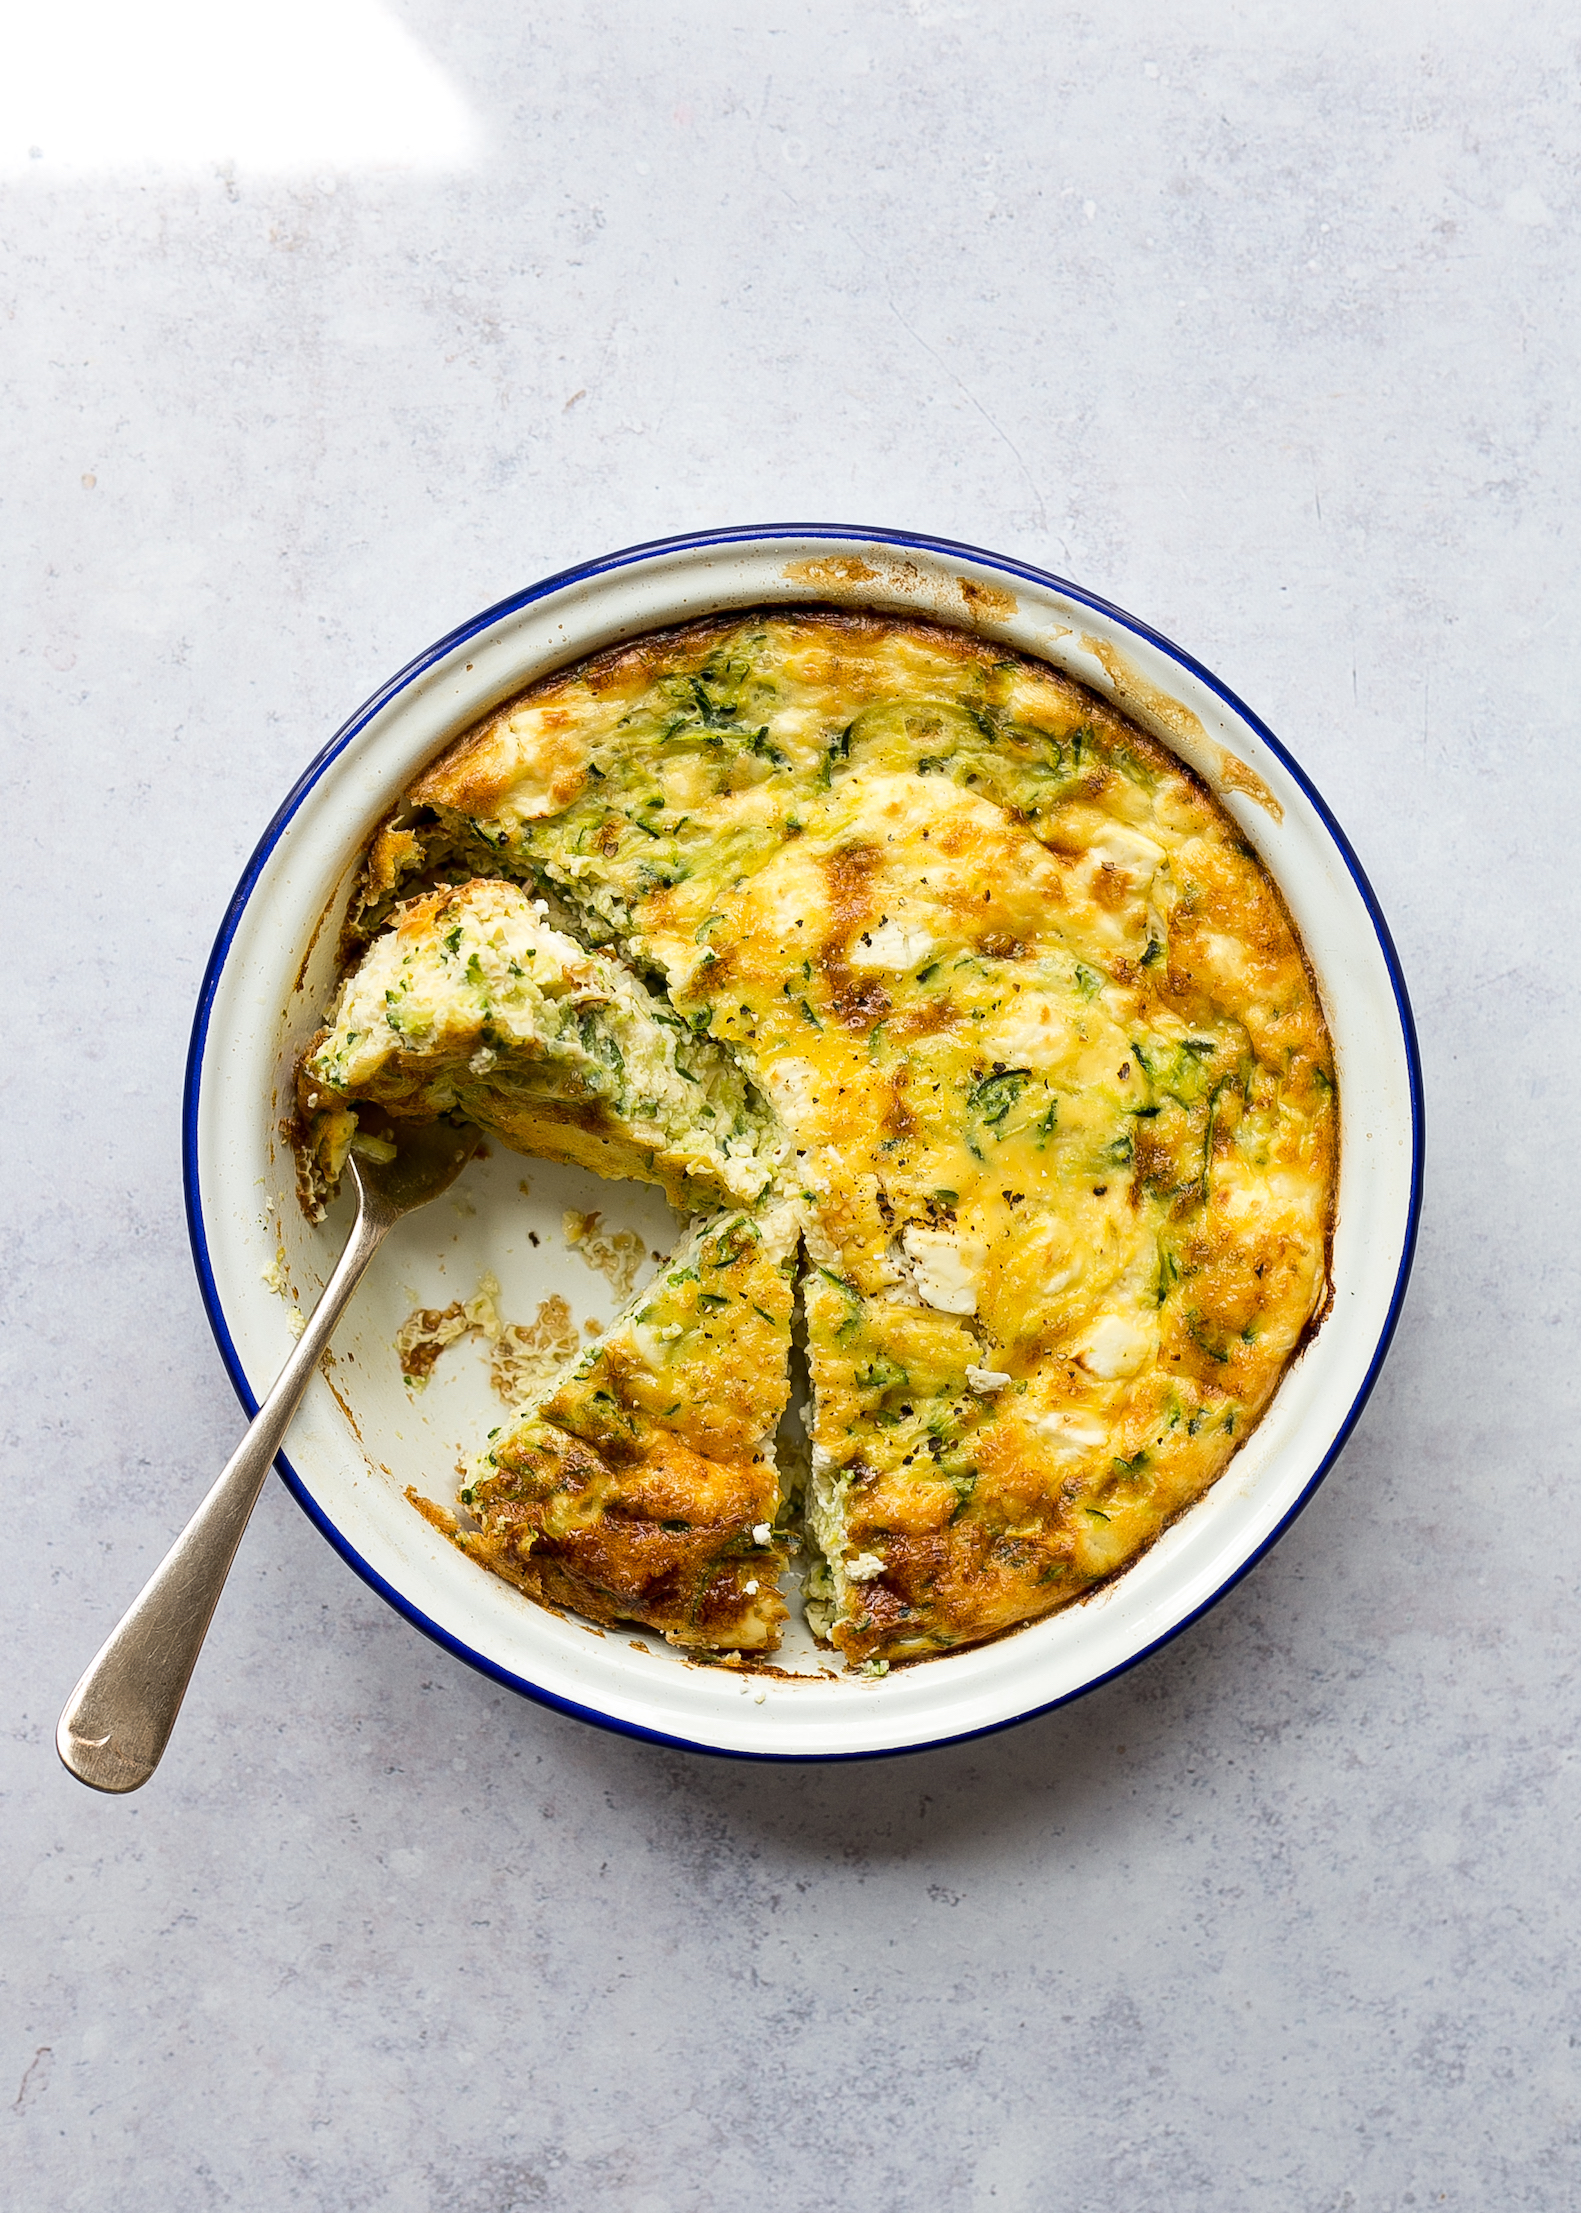 FODMAP friendly courgette and feta frittata